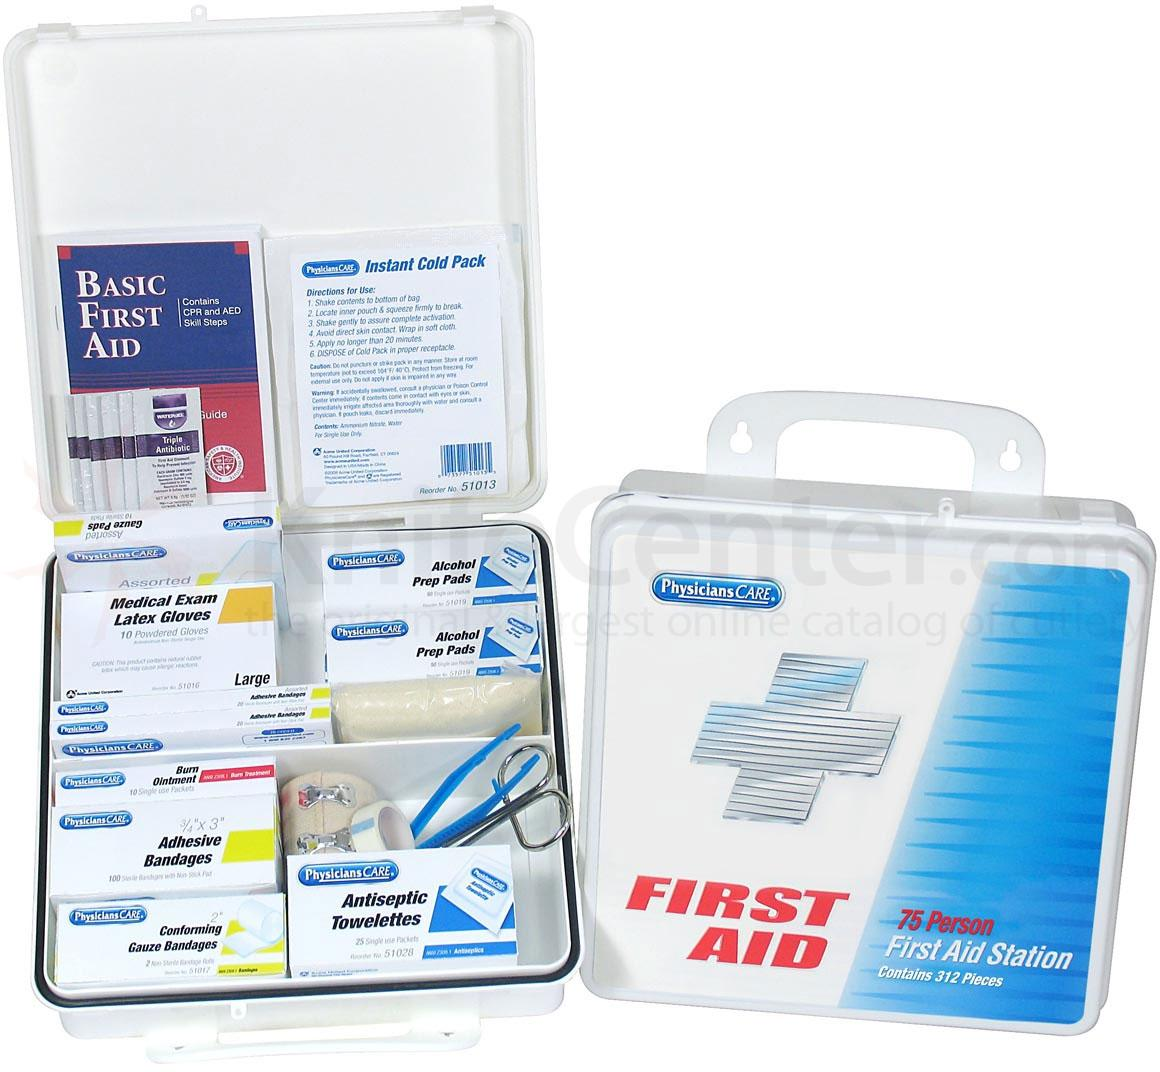 PhysiciansCare Office First Aid Kit for 75 People, Contains 312 Pieces